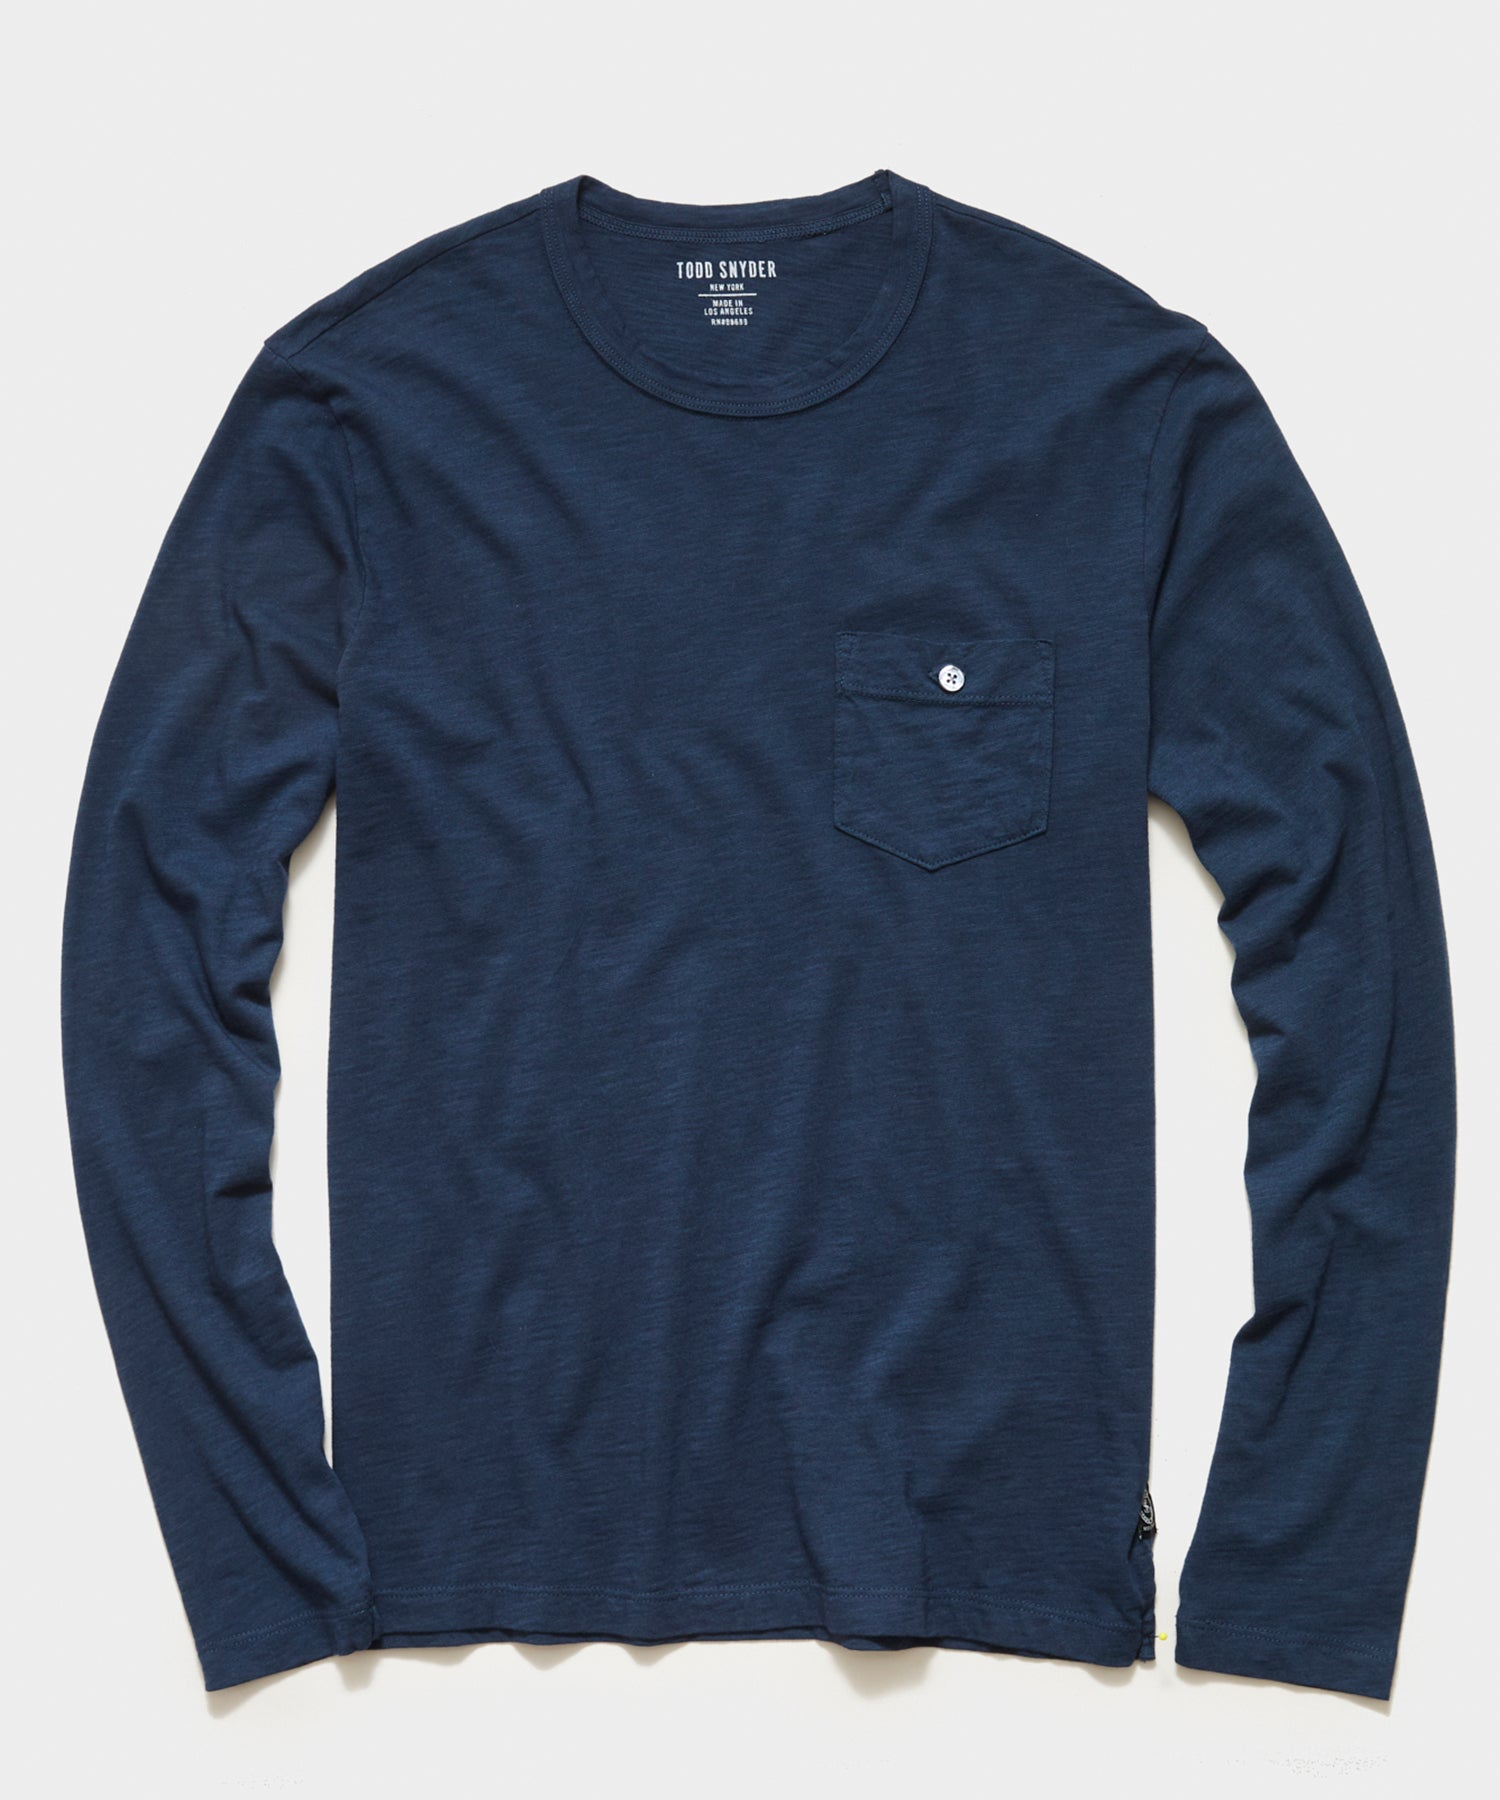 Made in L.A. Slub Jersey Long Sleeve Pocket T-Shirt in Original Navy